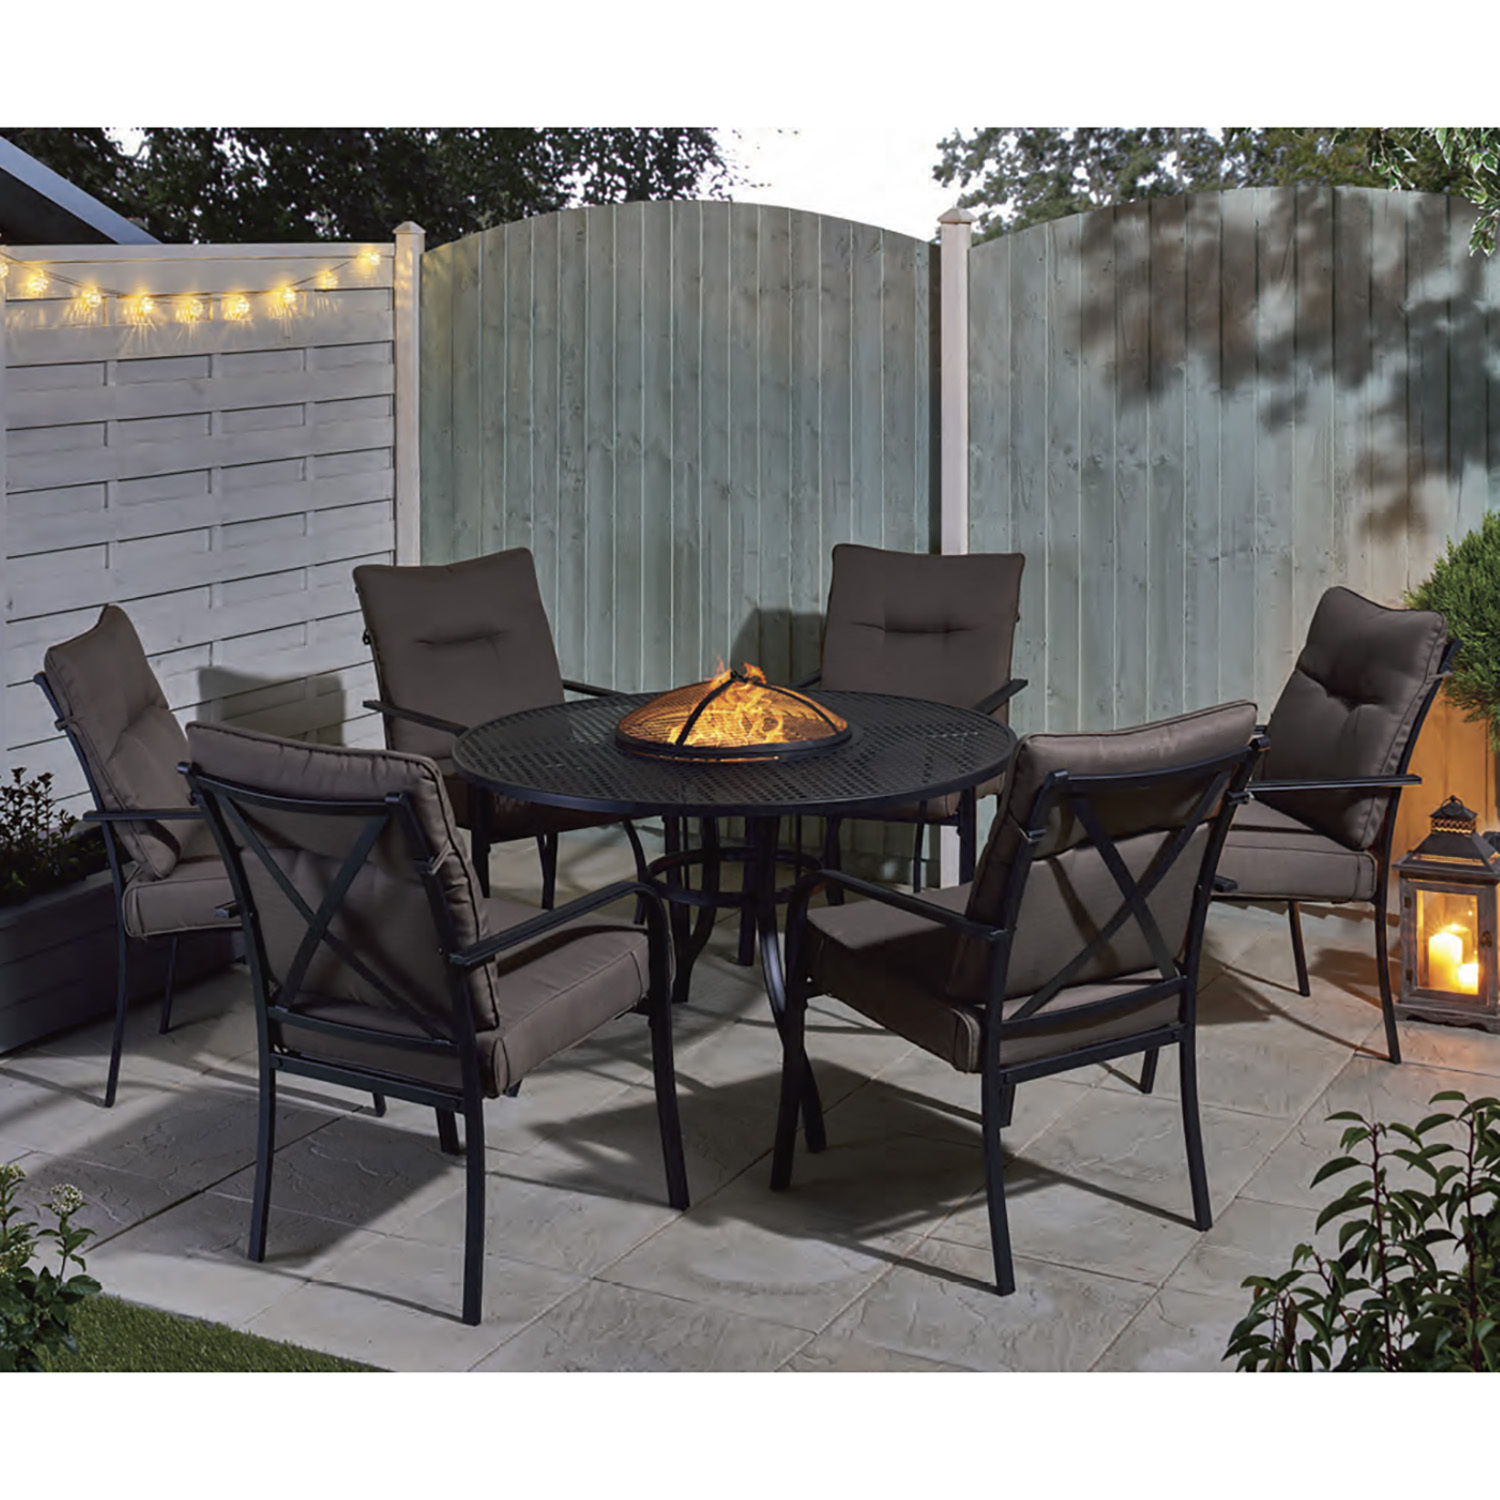 Catalonia Fire Pit And Ice Bucket Dining Set within proportions 1500 X 1500